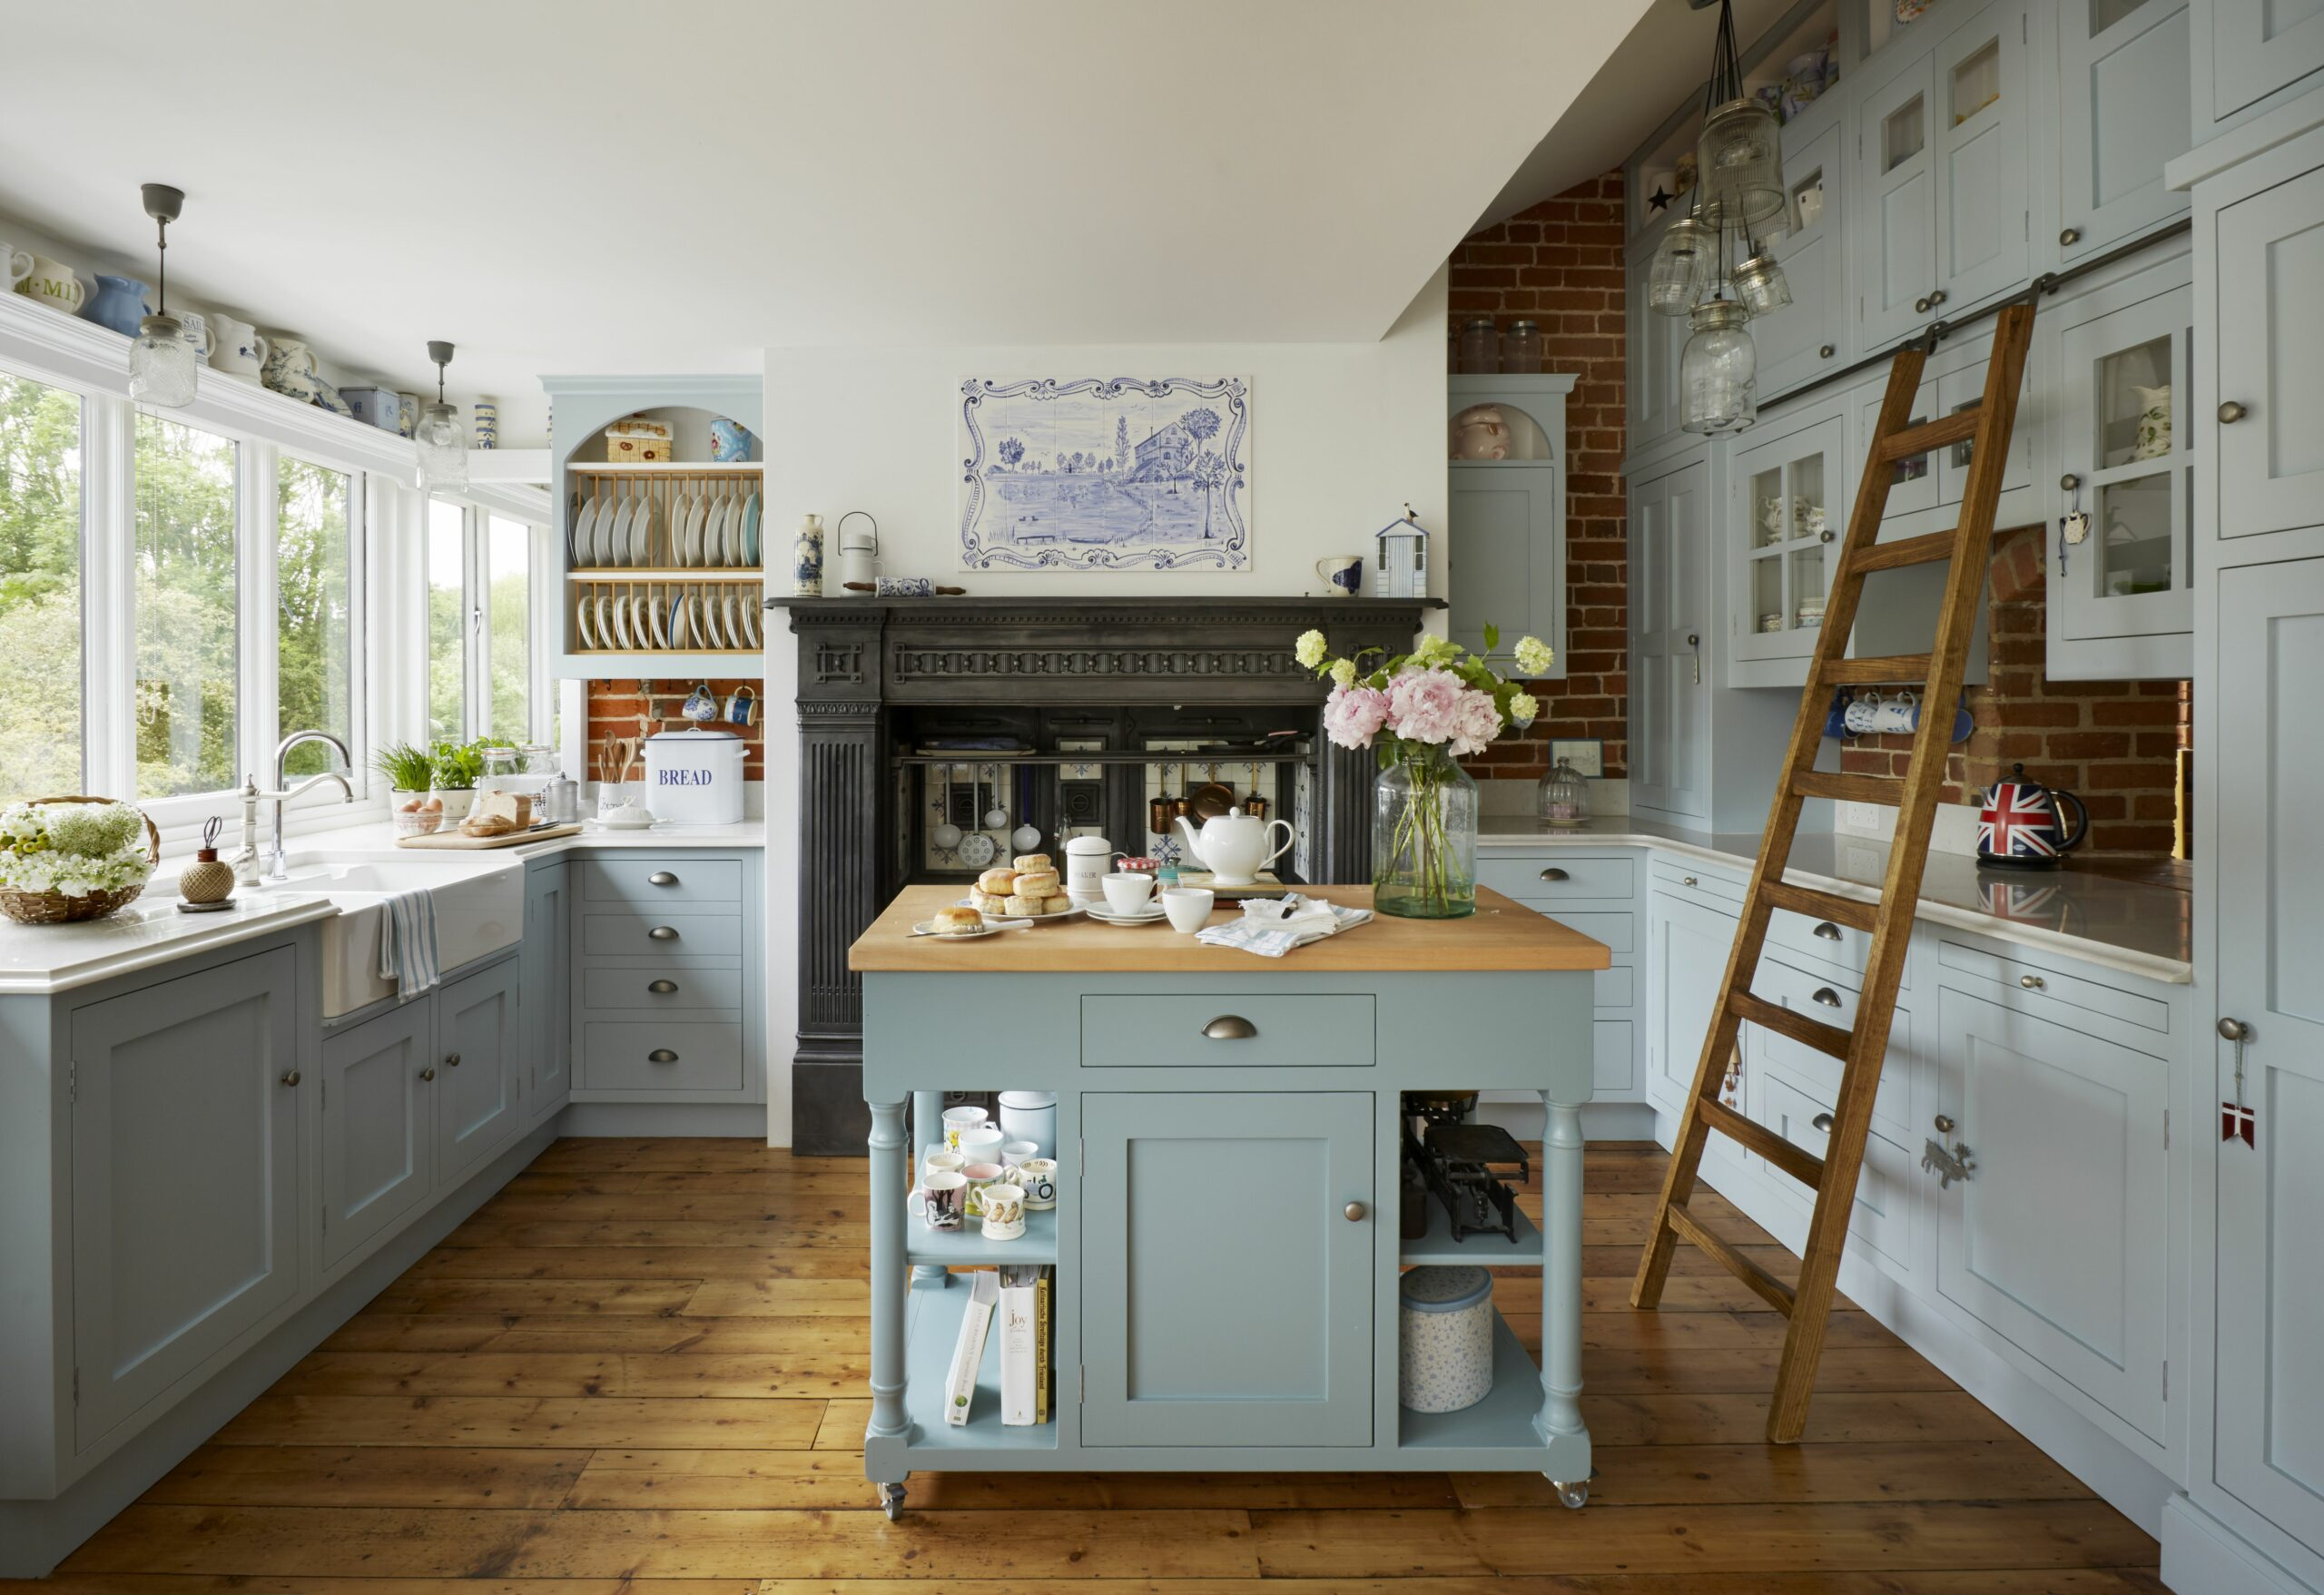 Designing a farmhouse kitchen: 8 ideas that are brimming with ..